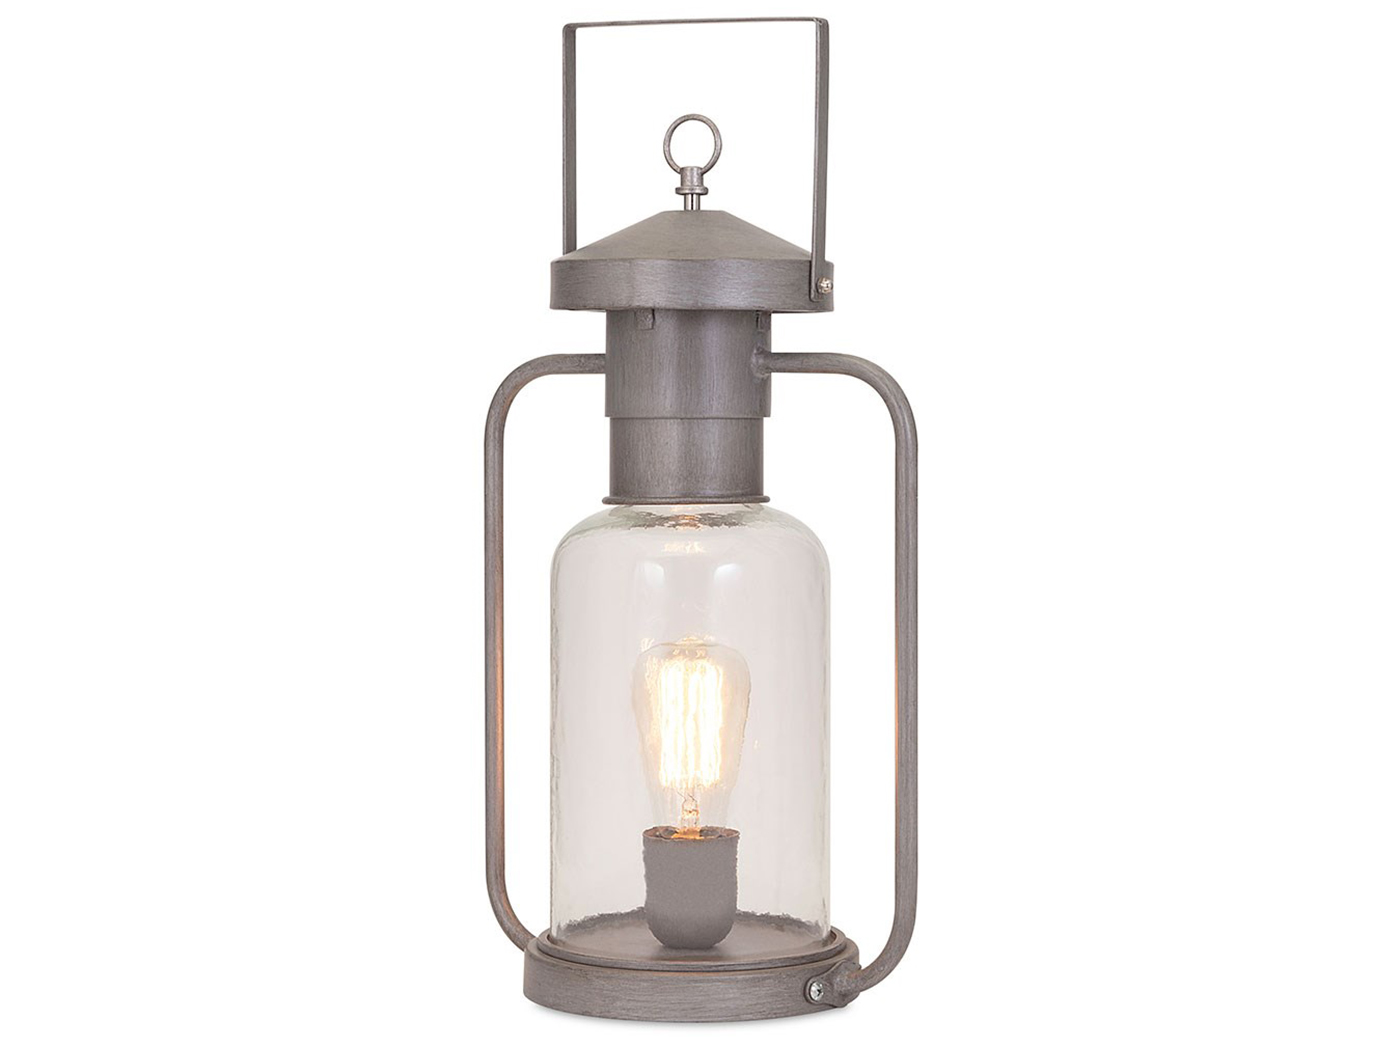 "Silver Metal/Glass Lantern Table Lamp 19""H with Edison Bulb"